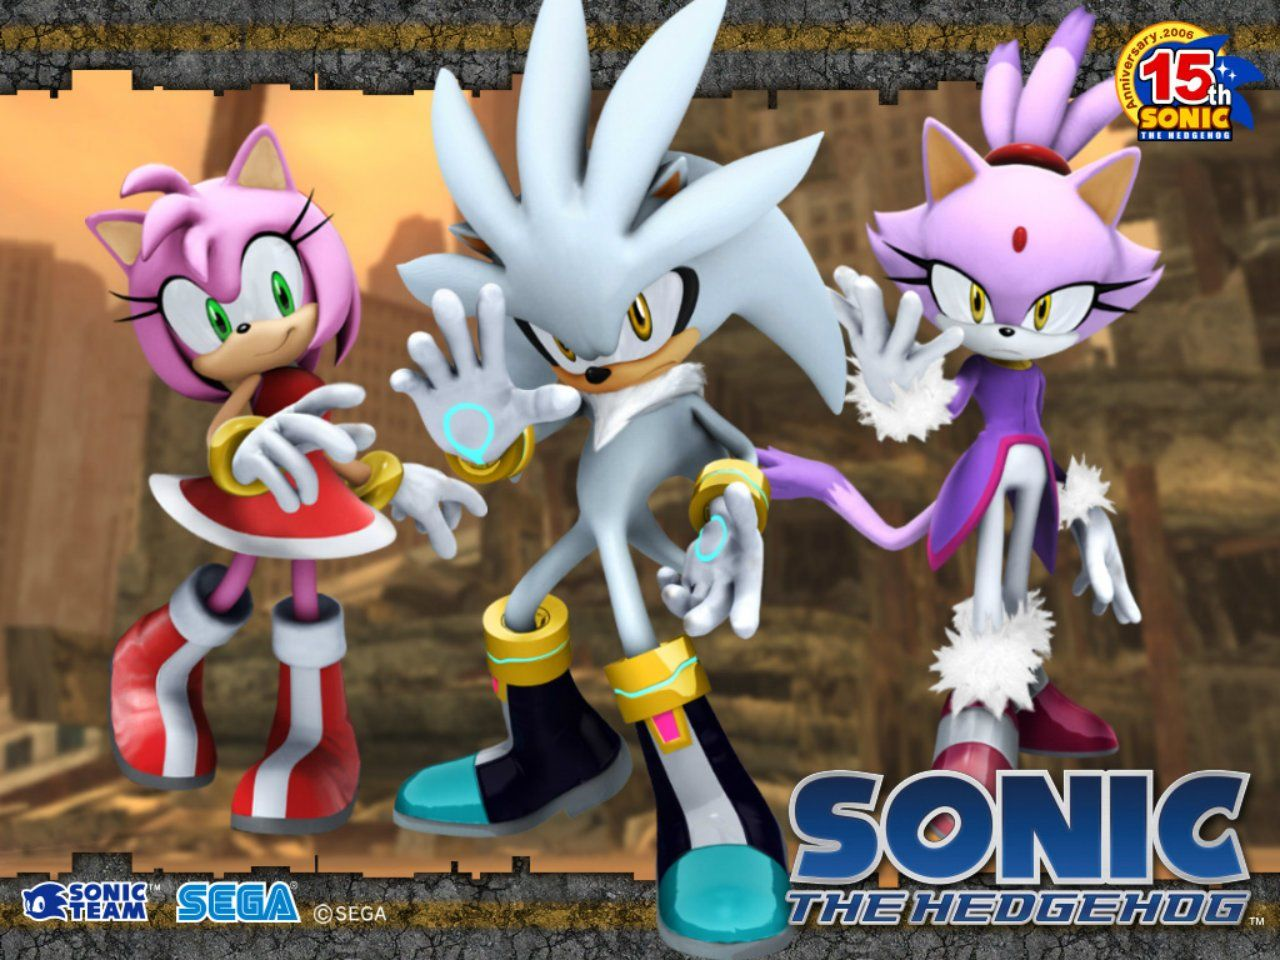 Video Game Sonic The Hedgehog 2006 Sonic Wallpaper Sonic